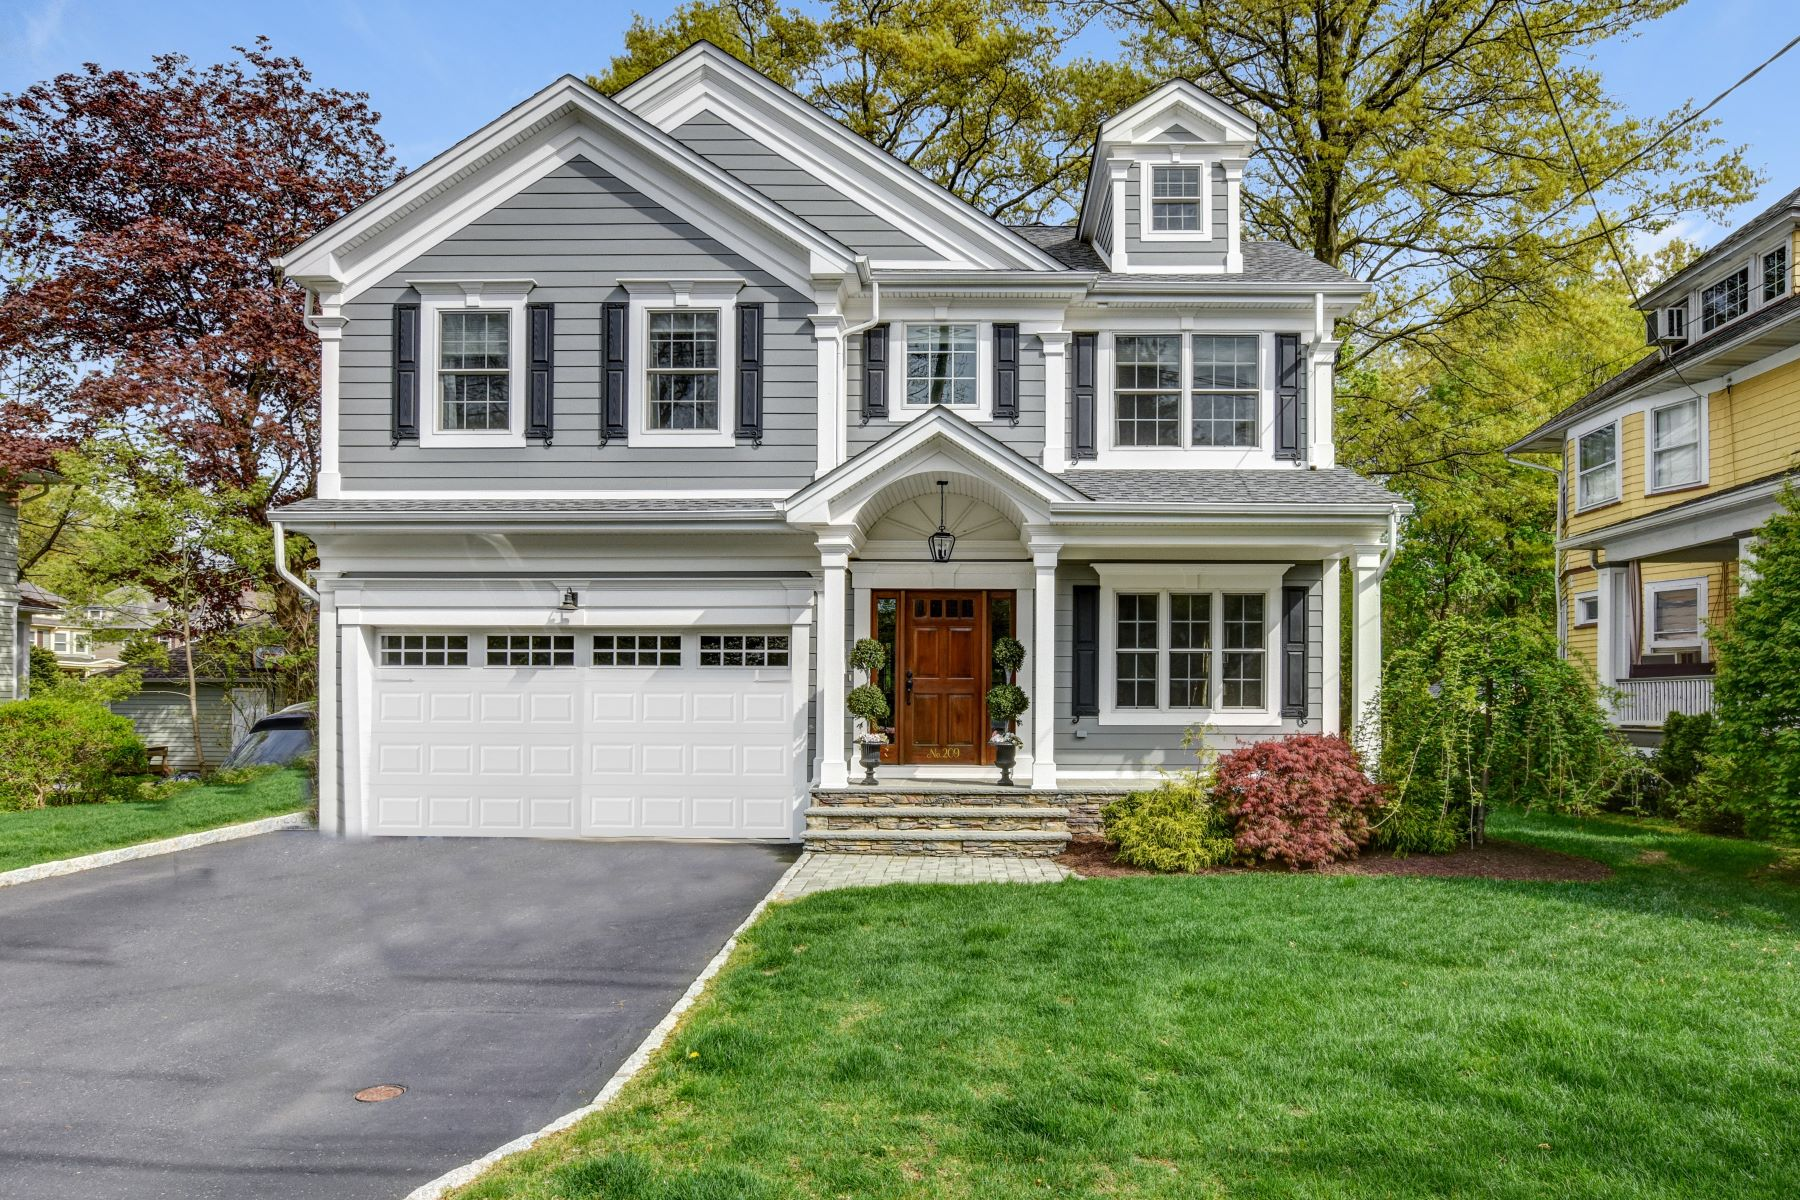 Single Family Homes for Sale at Stunning Colonial 209 Edgewood Avenue Westfield, New Jersey 07090 United States